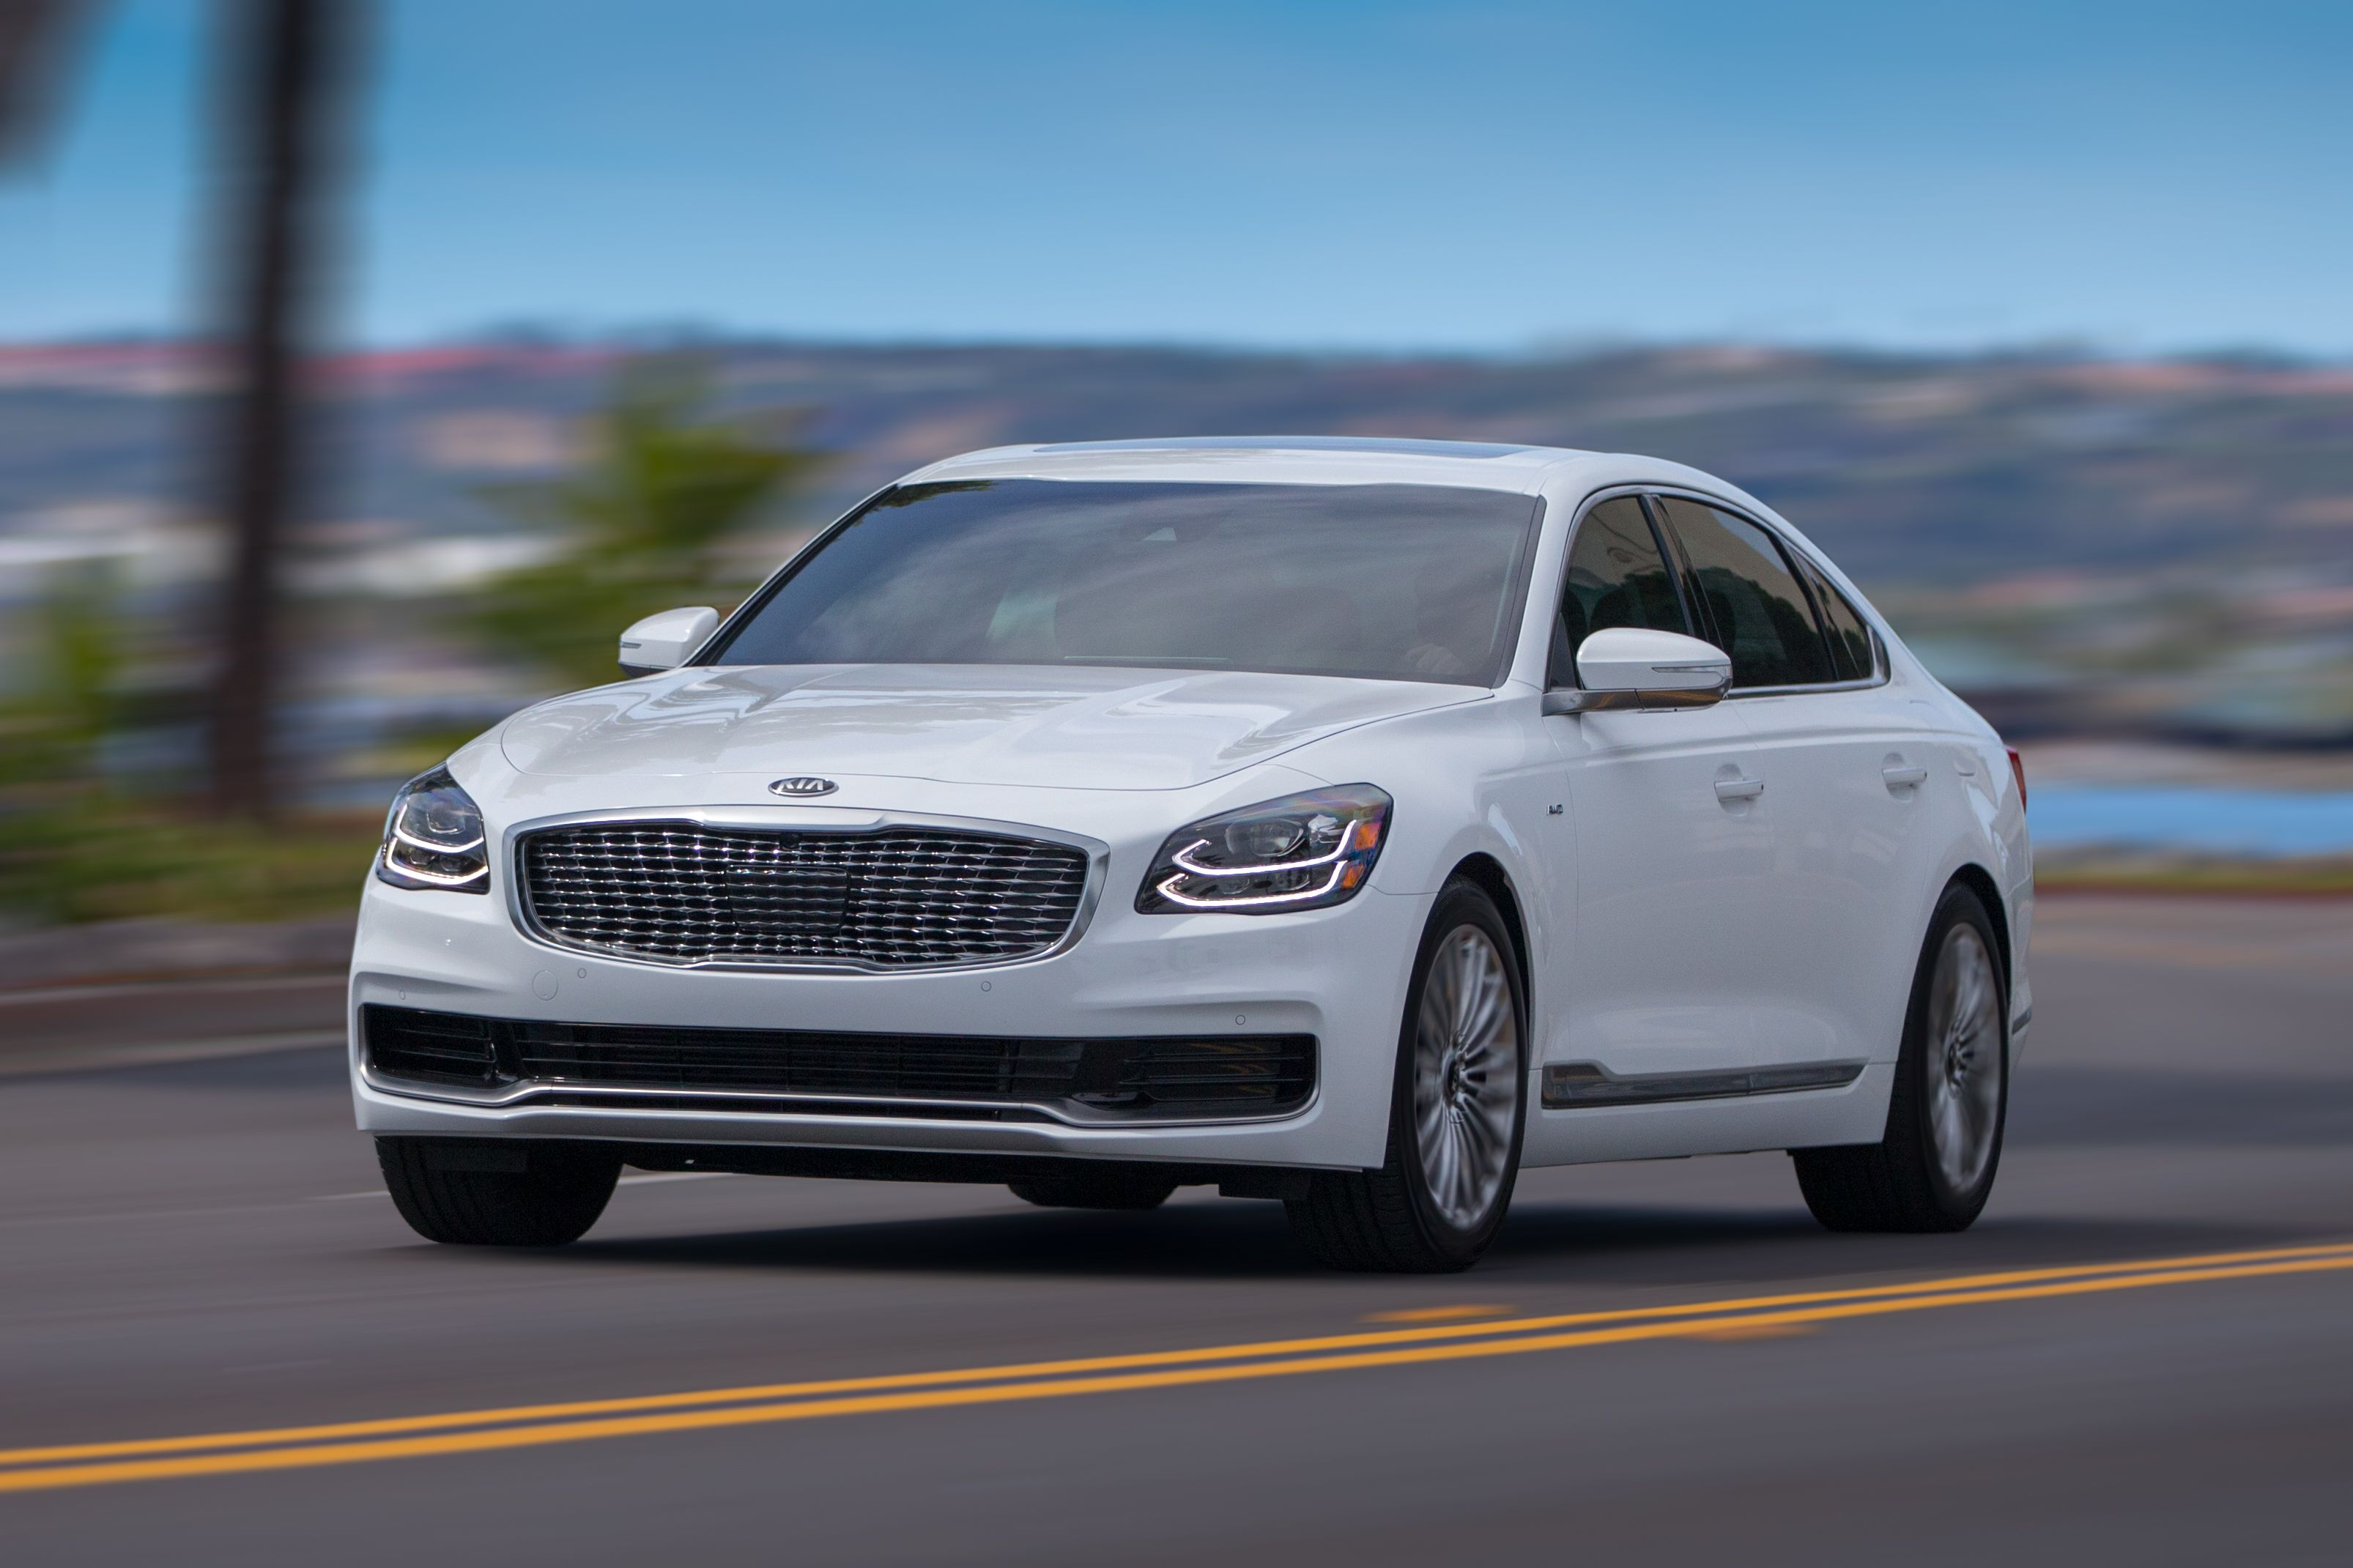 Kia Debuts Refreshed Designs For The K900 And Optima Luxury Cars Luxury Hybrid Cars Best New Cars